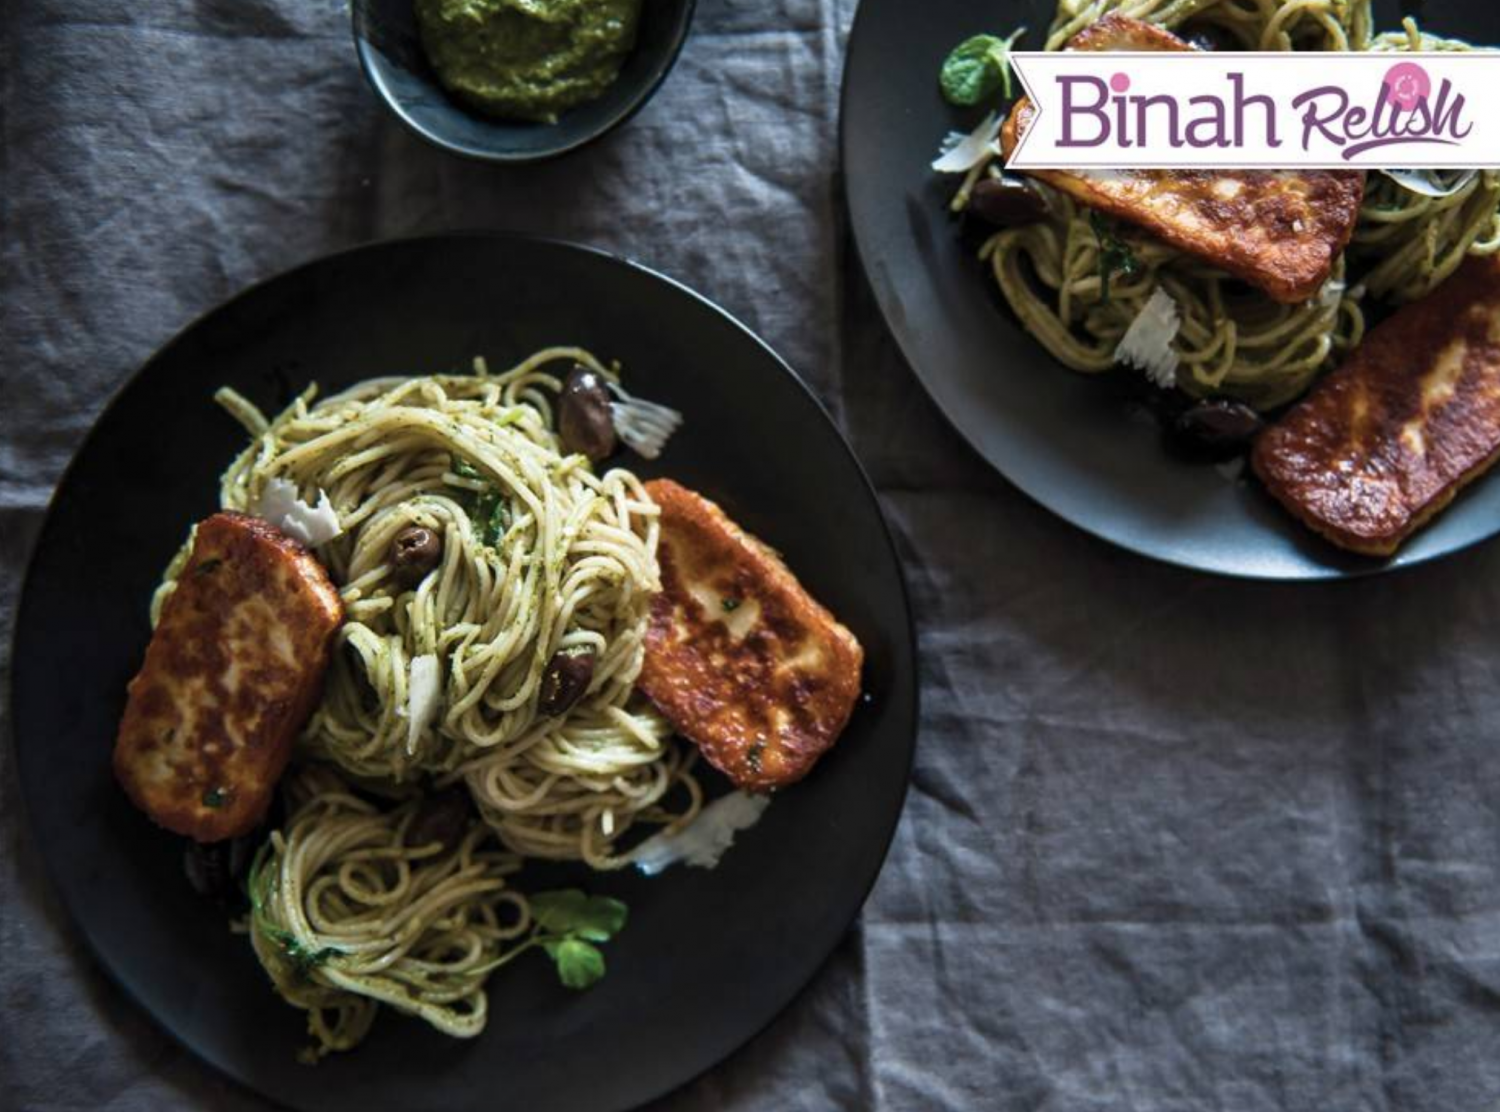 This recipe for Fried Haloumi Spaghetti with Basil-Mint Pesto is easy to follow and is appropriatefor Chanukah (Hanukkah), the Jewish festival of rededication celebrated in December, and often referred to as the festival of lights. The haloumi has a firm texture that, when fried, yields a crispy, salty skin that's irresistible. Use it to top this pasta, giving a fresh, creamy flavor to the overall dish.